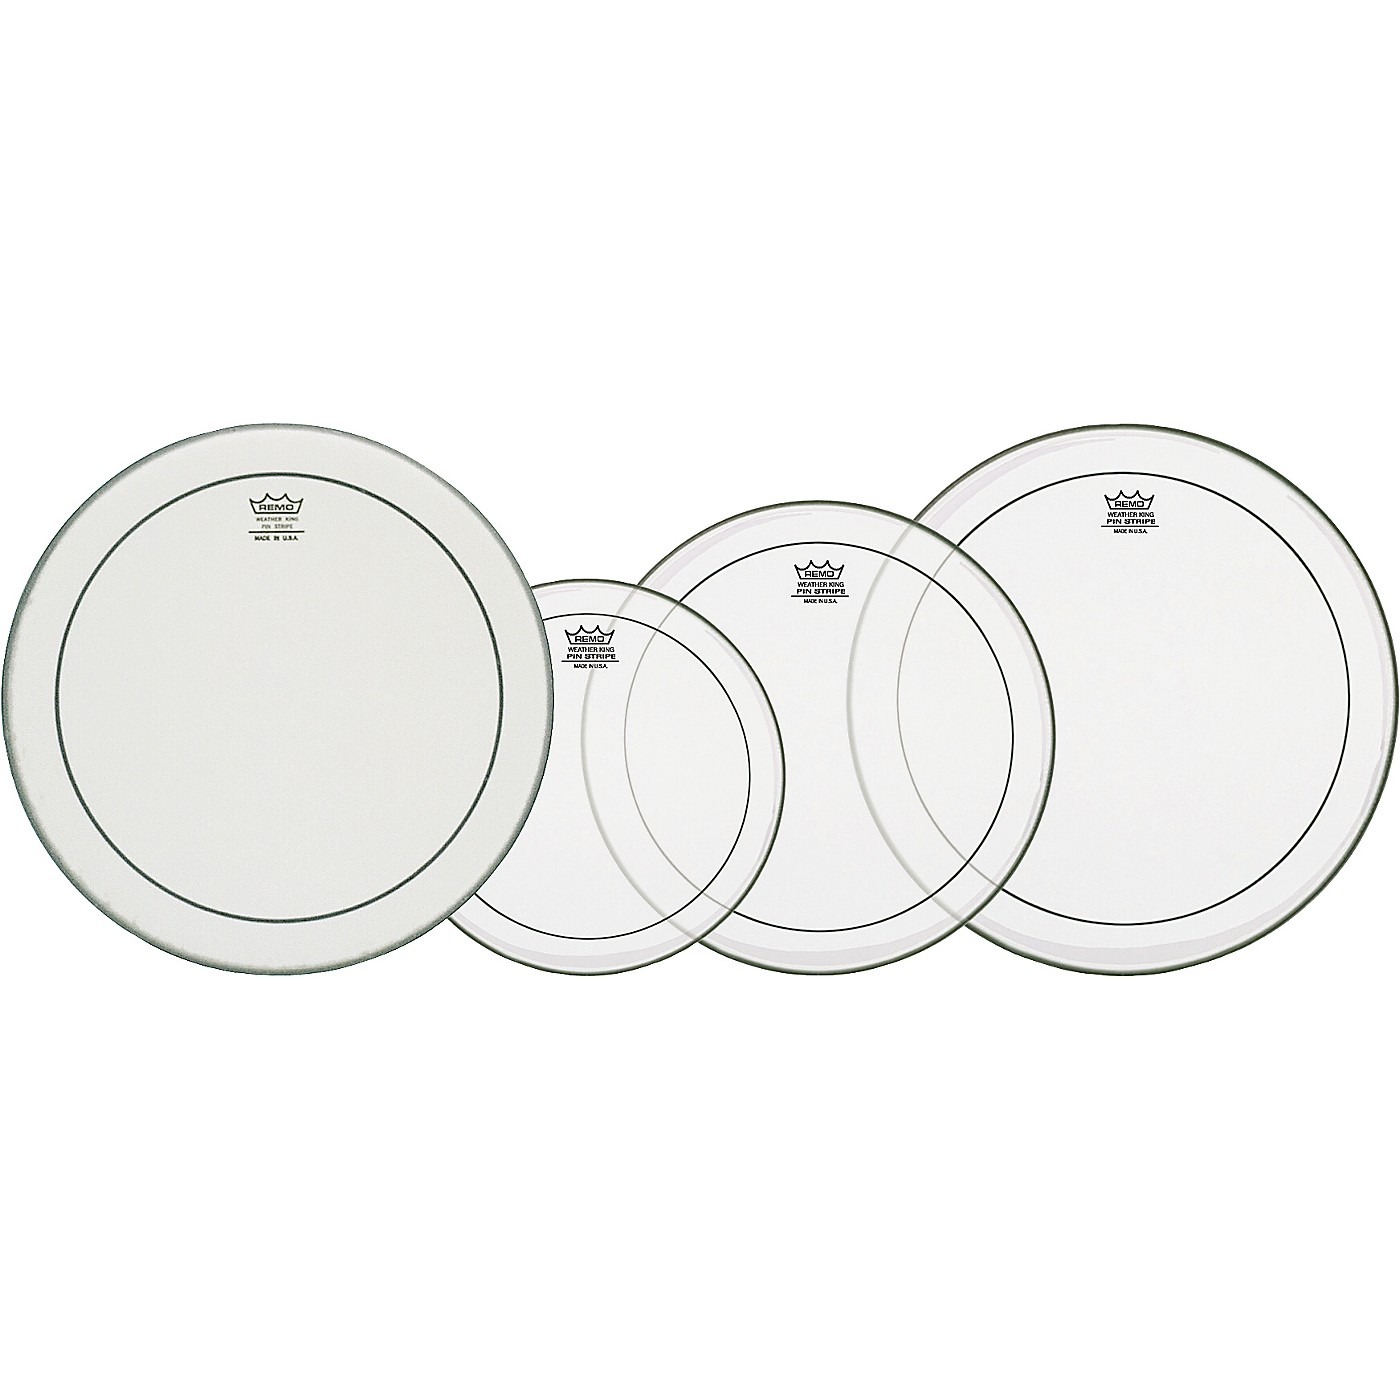 Remo Clear Pinstripe Fusion Pro Pack with Free 14 in. Powerstroke 3 Snare Drum Head thumbnail